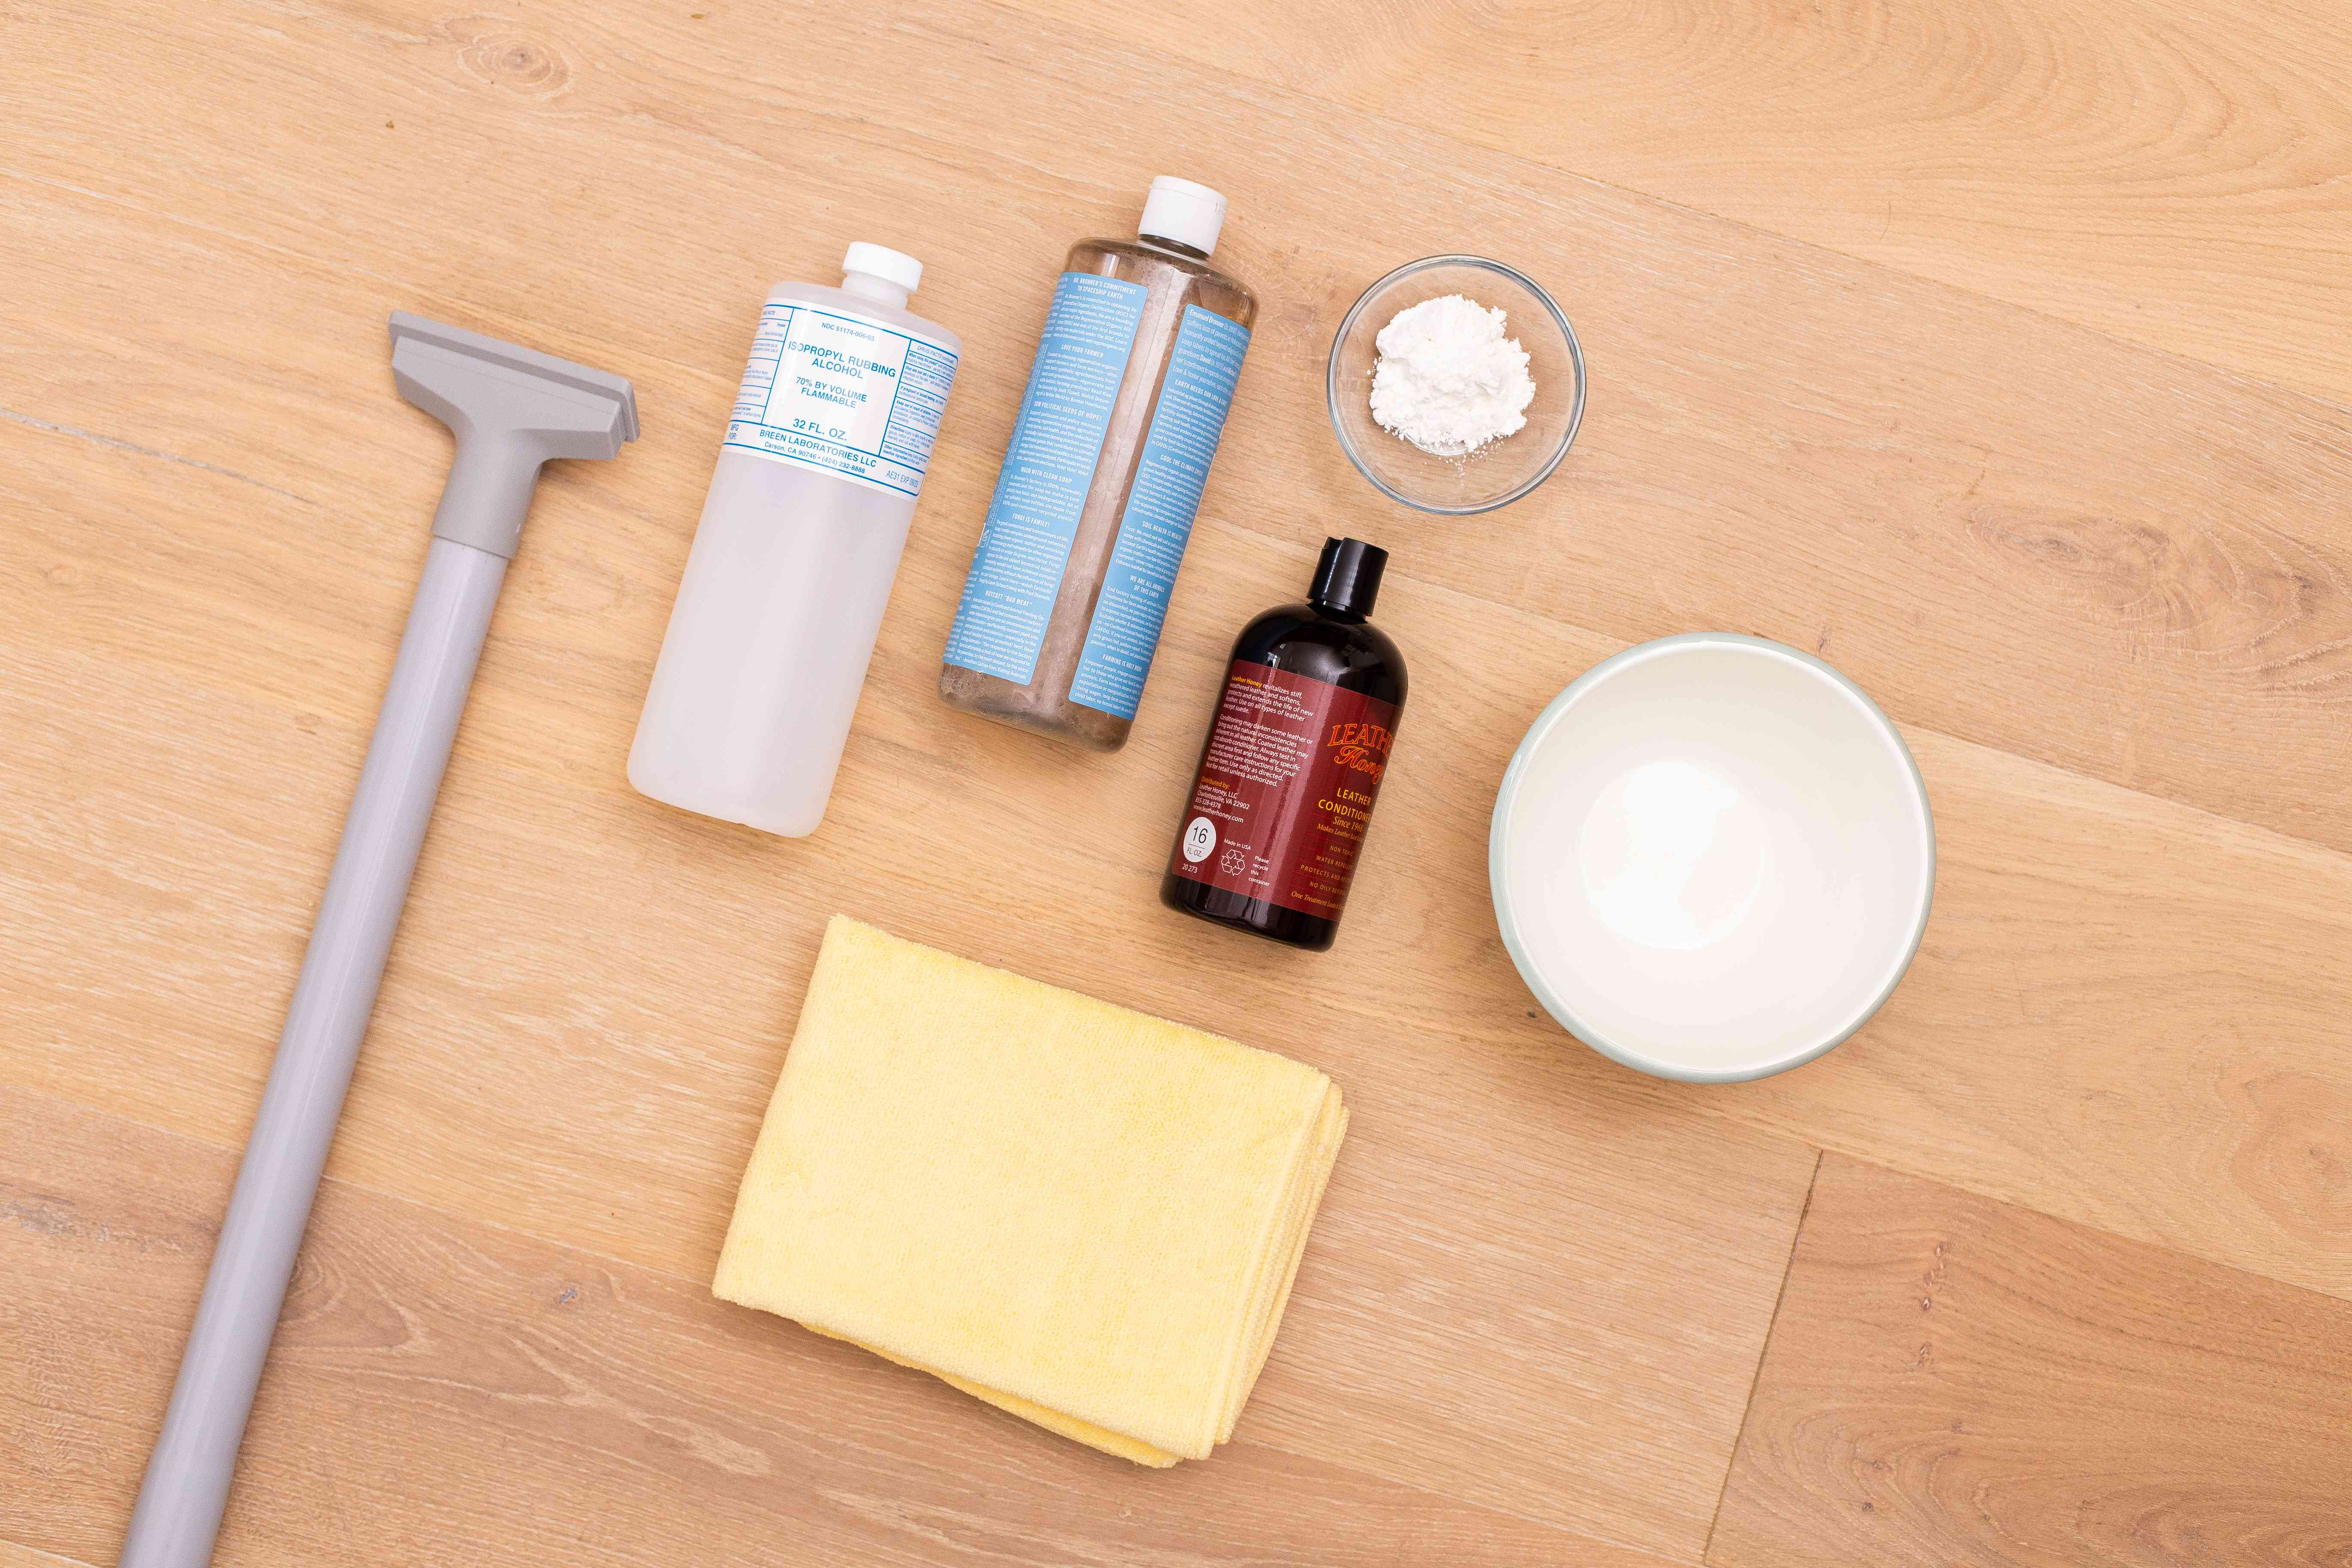 Materials and tools to clean a leather couch